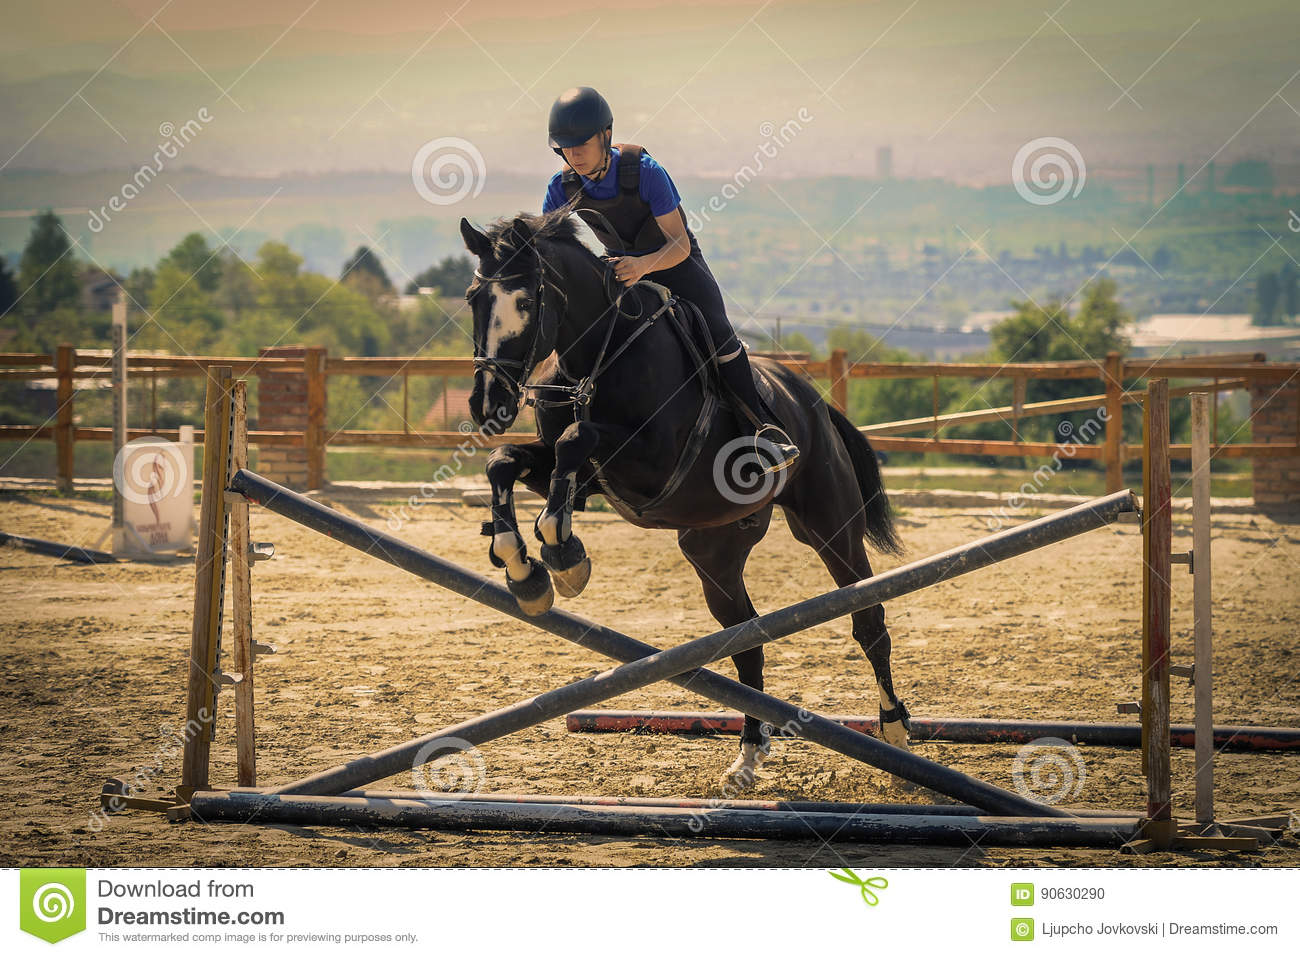 Jockey Riding A Fast Thoroughbred Horse Stock Photo Image Of Hurdle Field 90630290